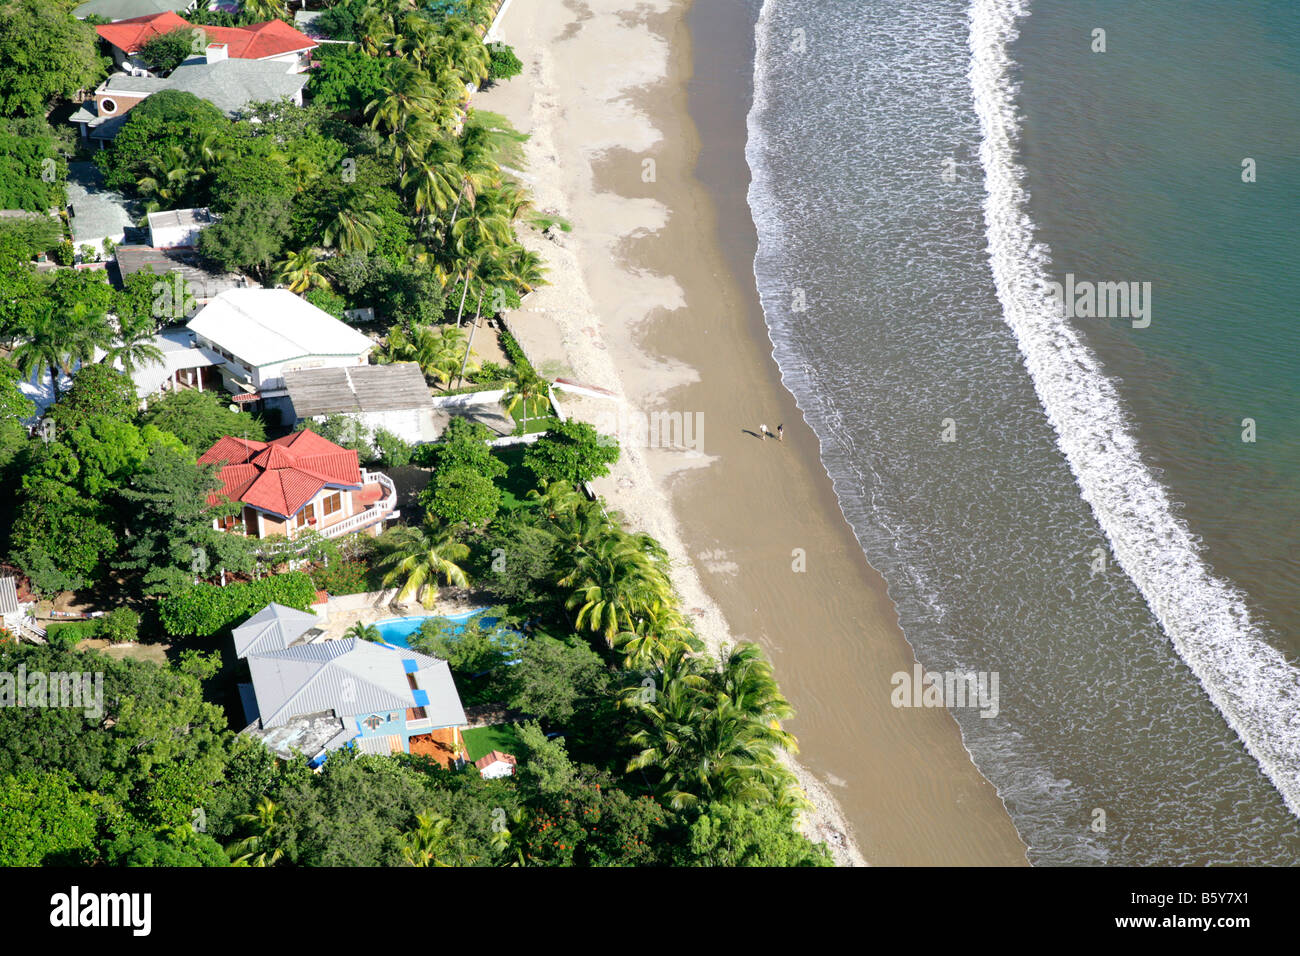 Arial view over the beach in San Juan del Sur Nicaragua central america pacific ocean pacific coast Stock Photo